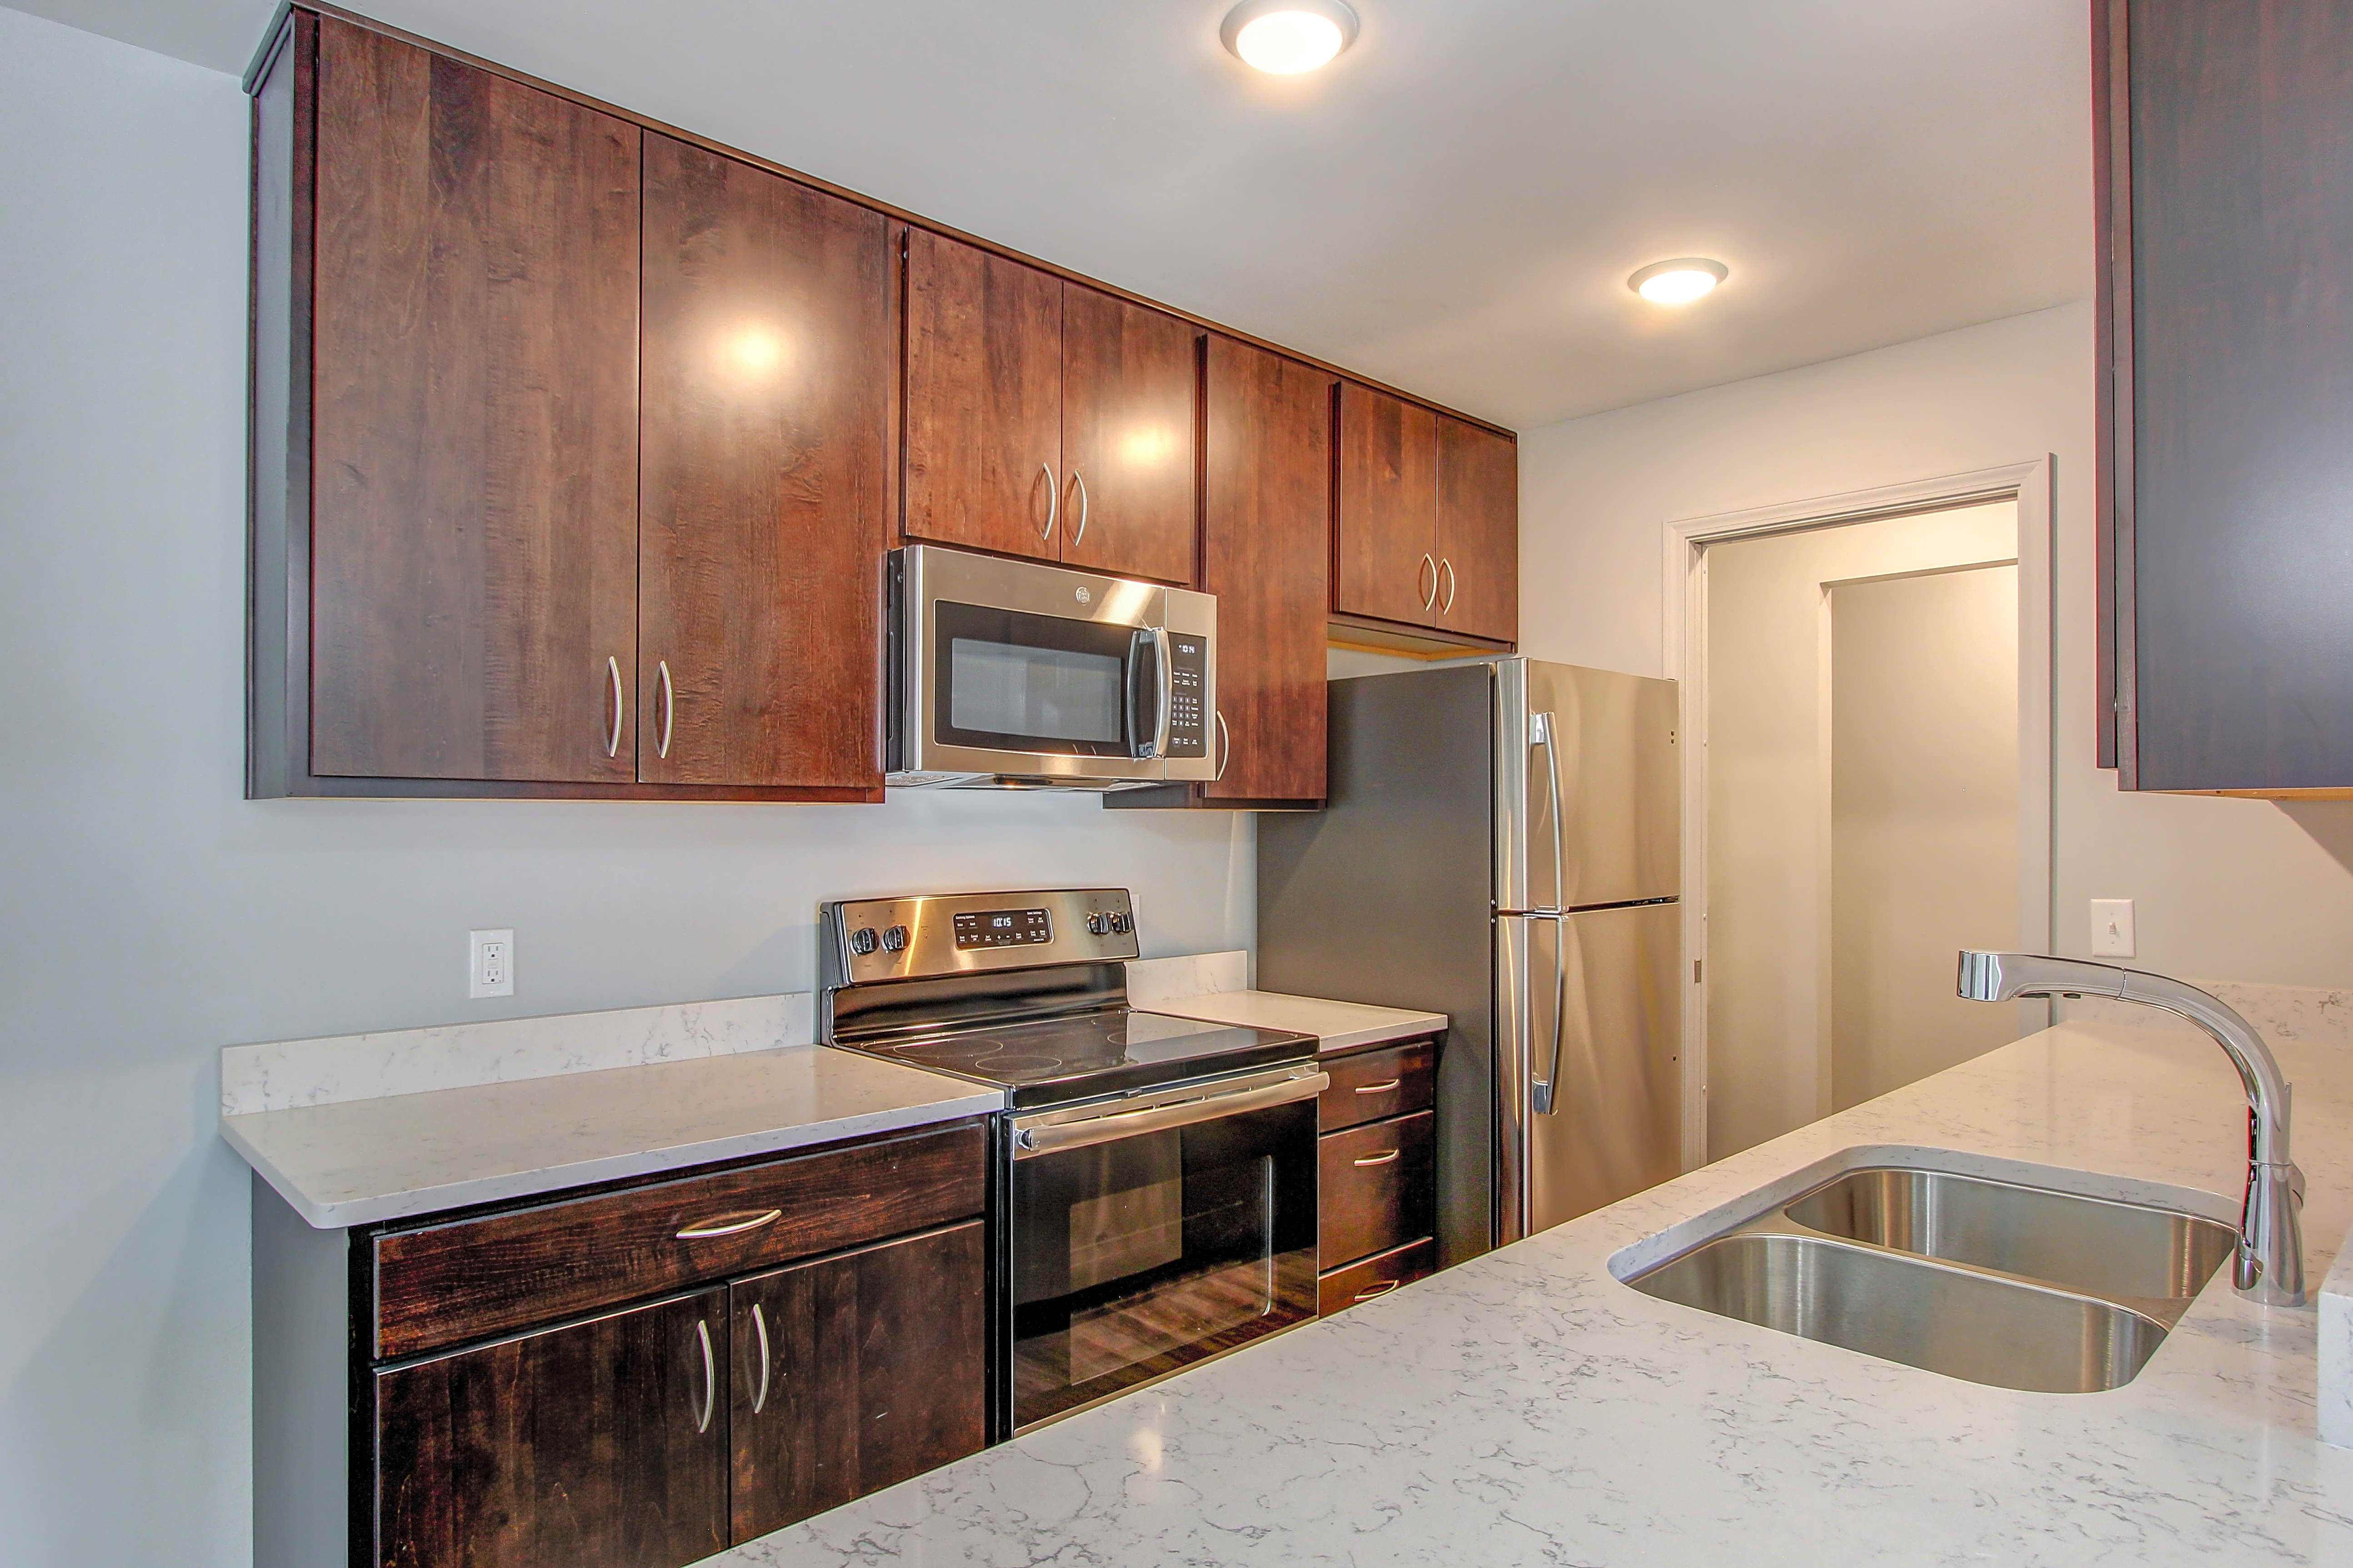 Apartments Near Lourdes Orchard Village for Lourdes College Students in Sylvania, OH